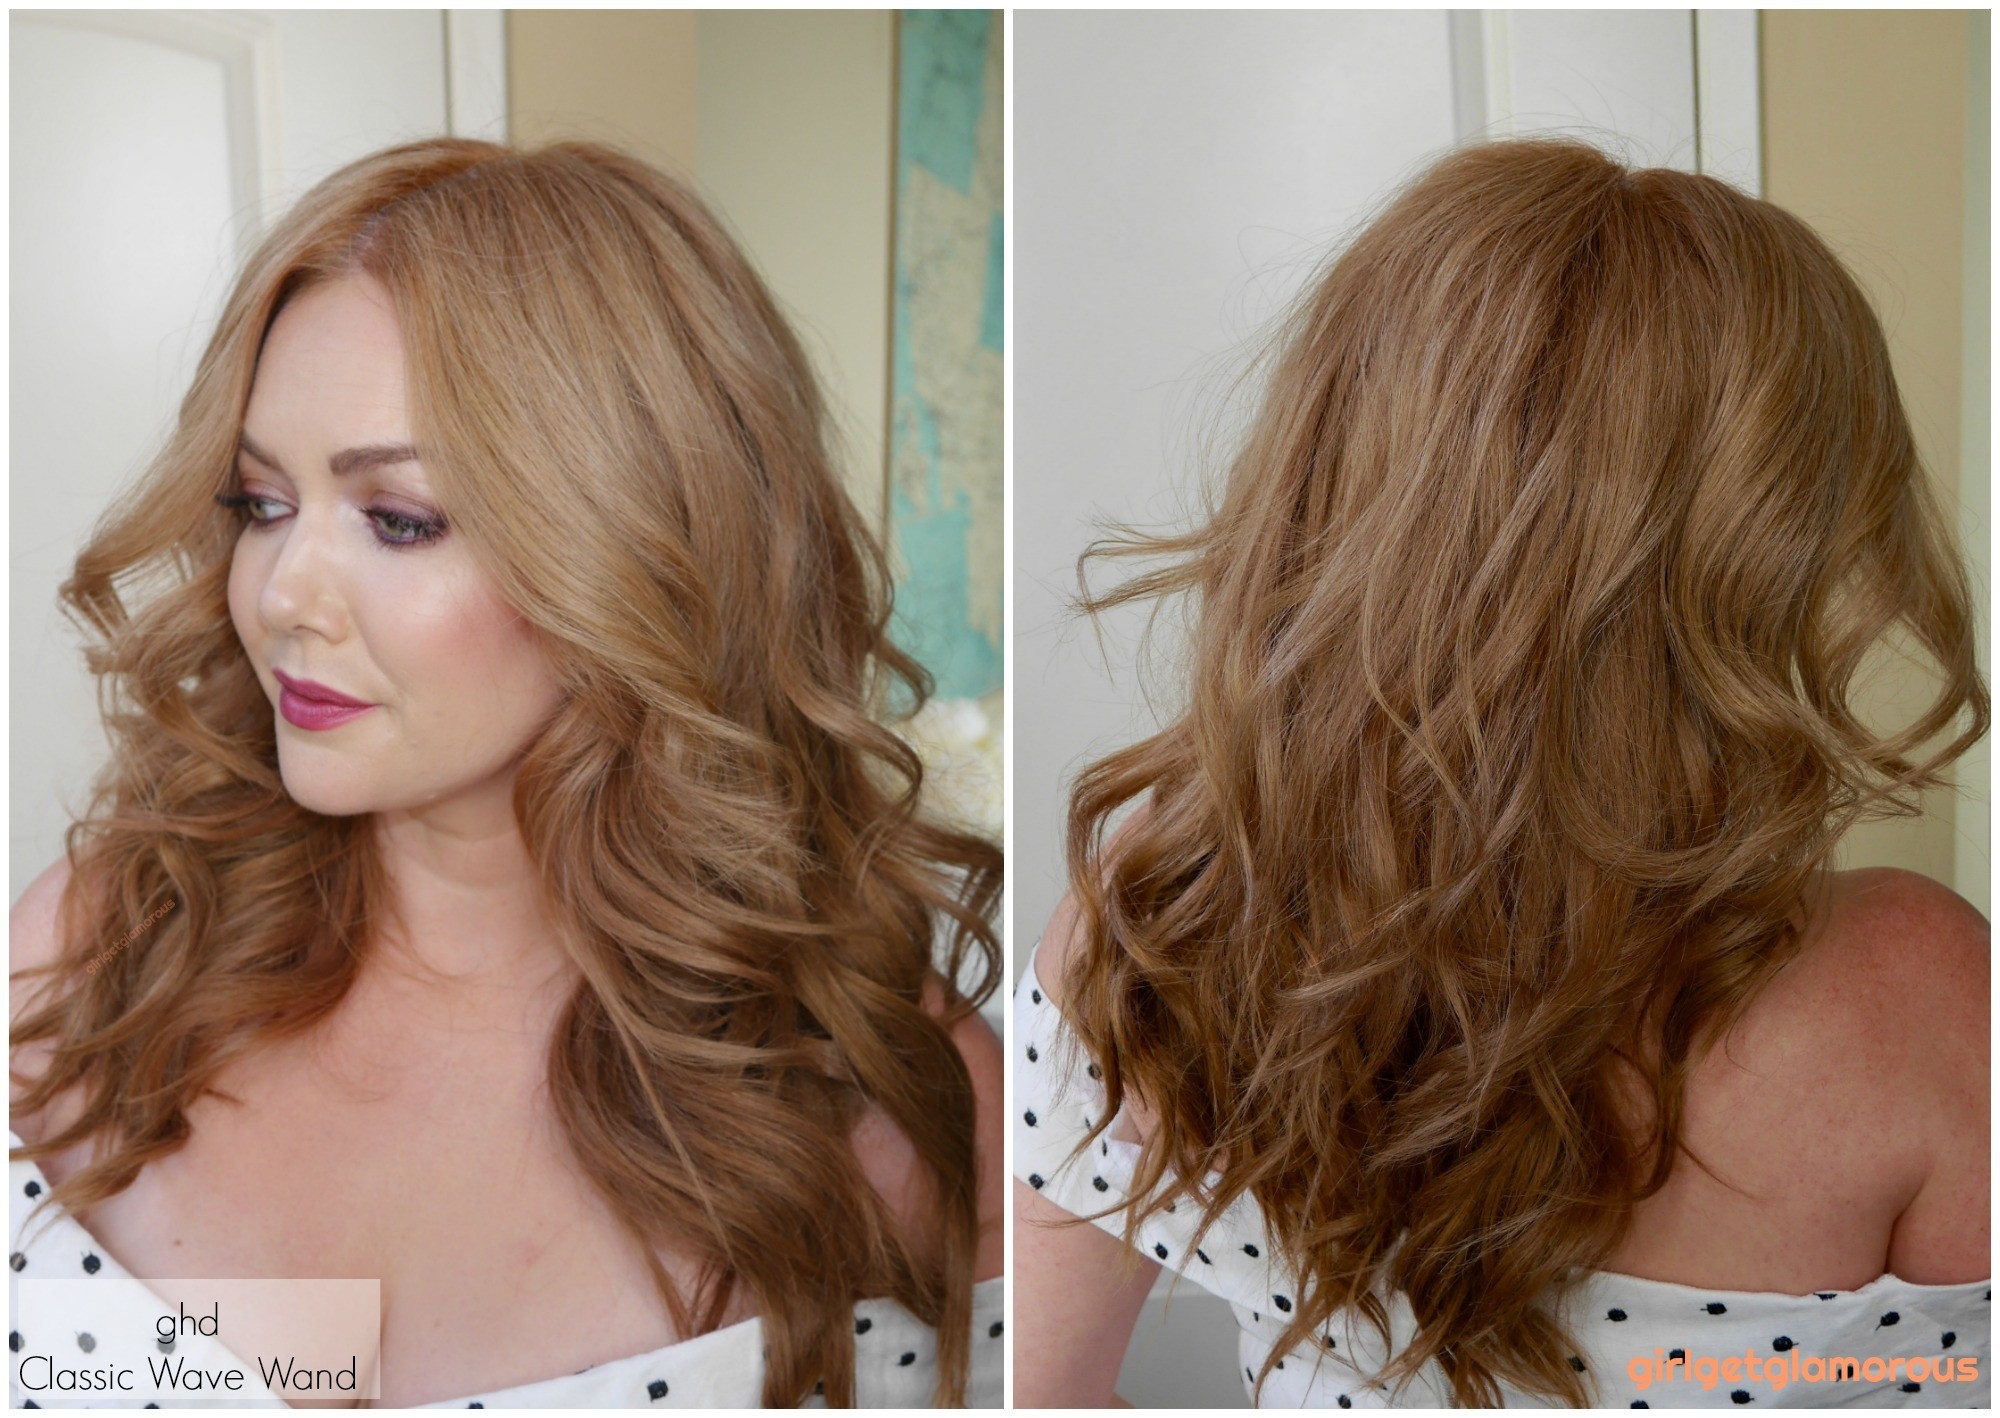 ghd classic wave tong wand curler curl results before after beach curls waves beauty blog best curler for my hair blogger